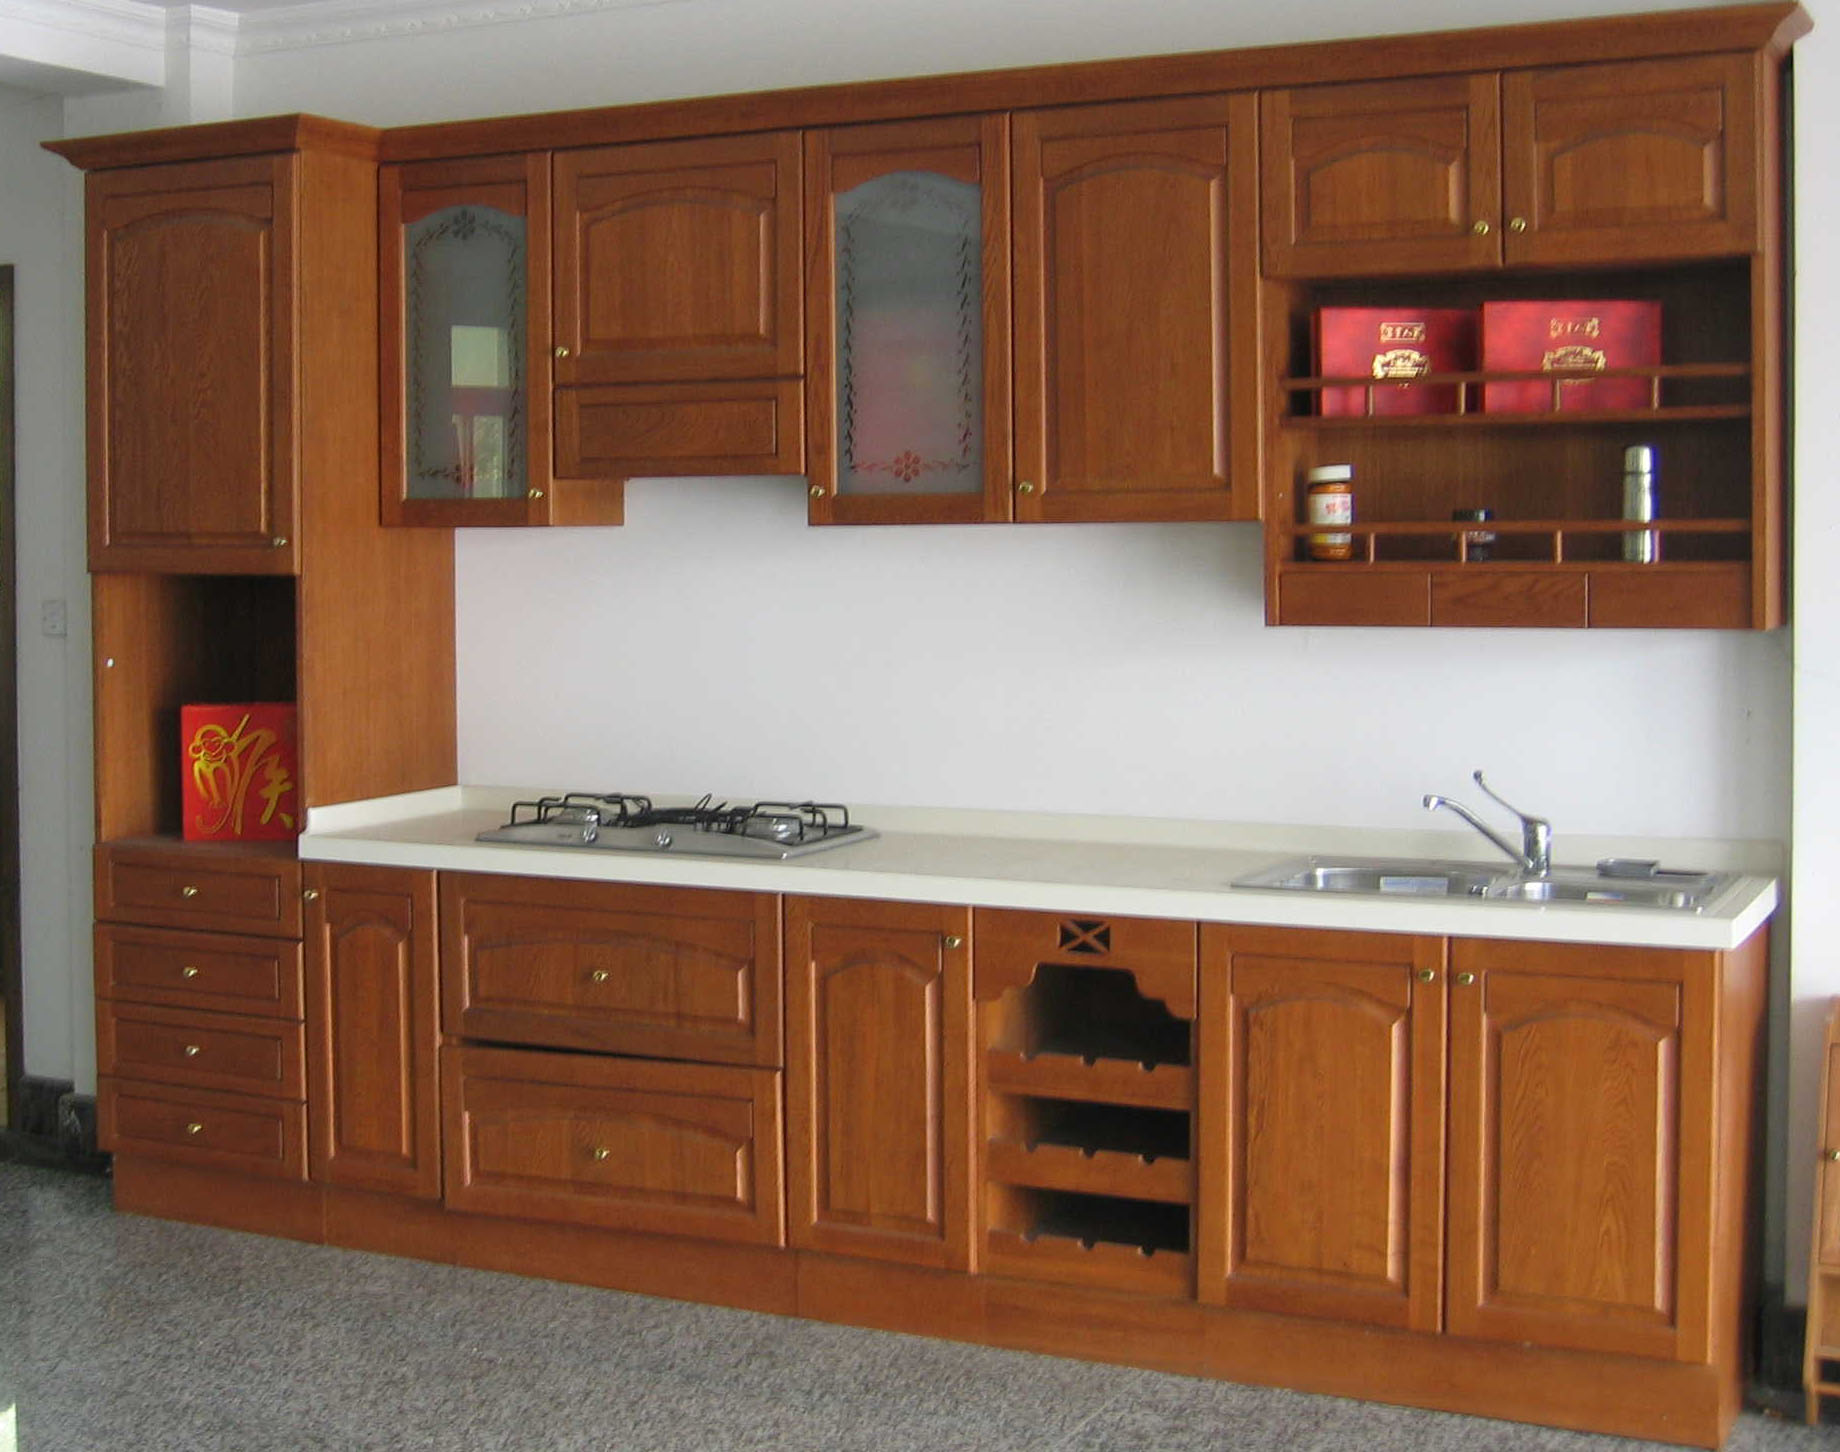 frameless kitchen cabinets collapsible table improve your and start it from cabinet my